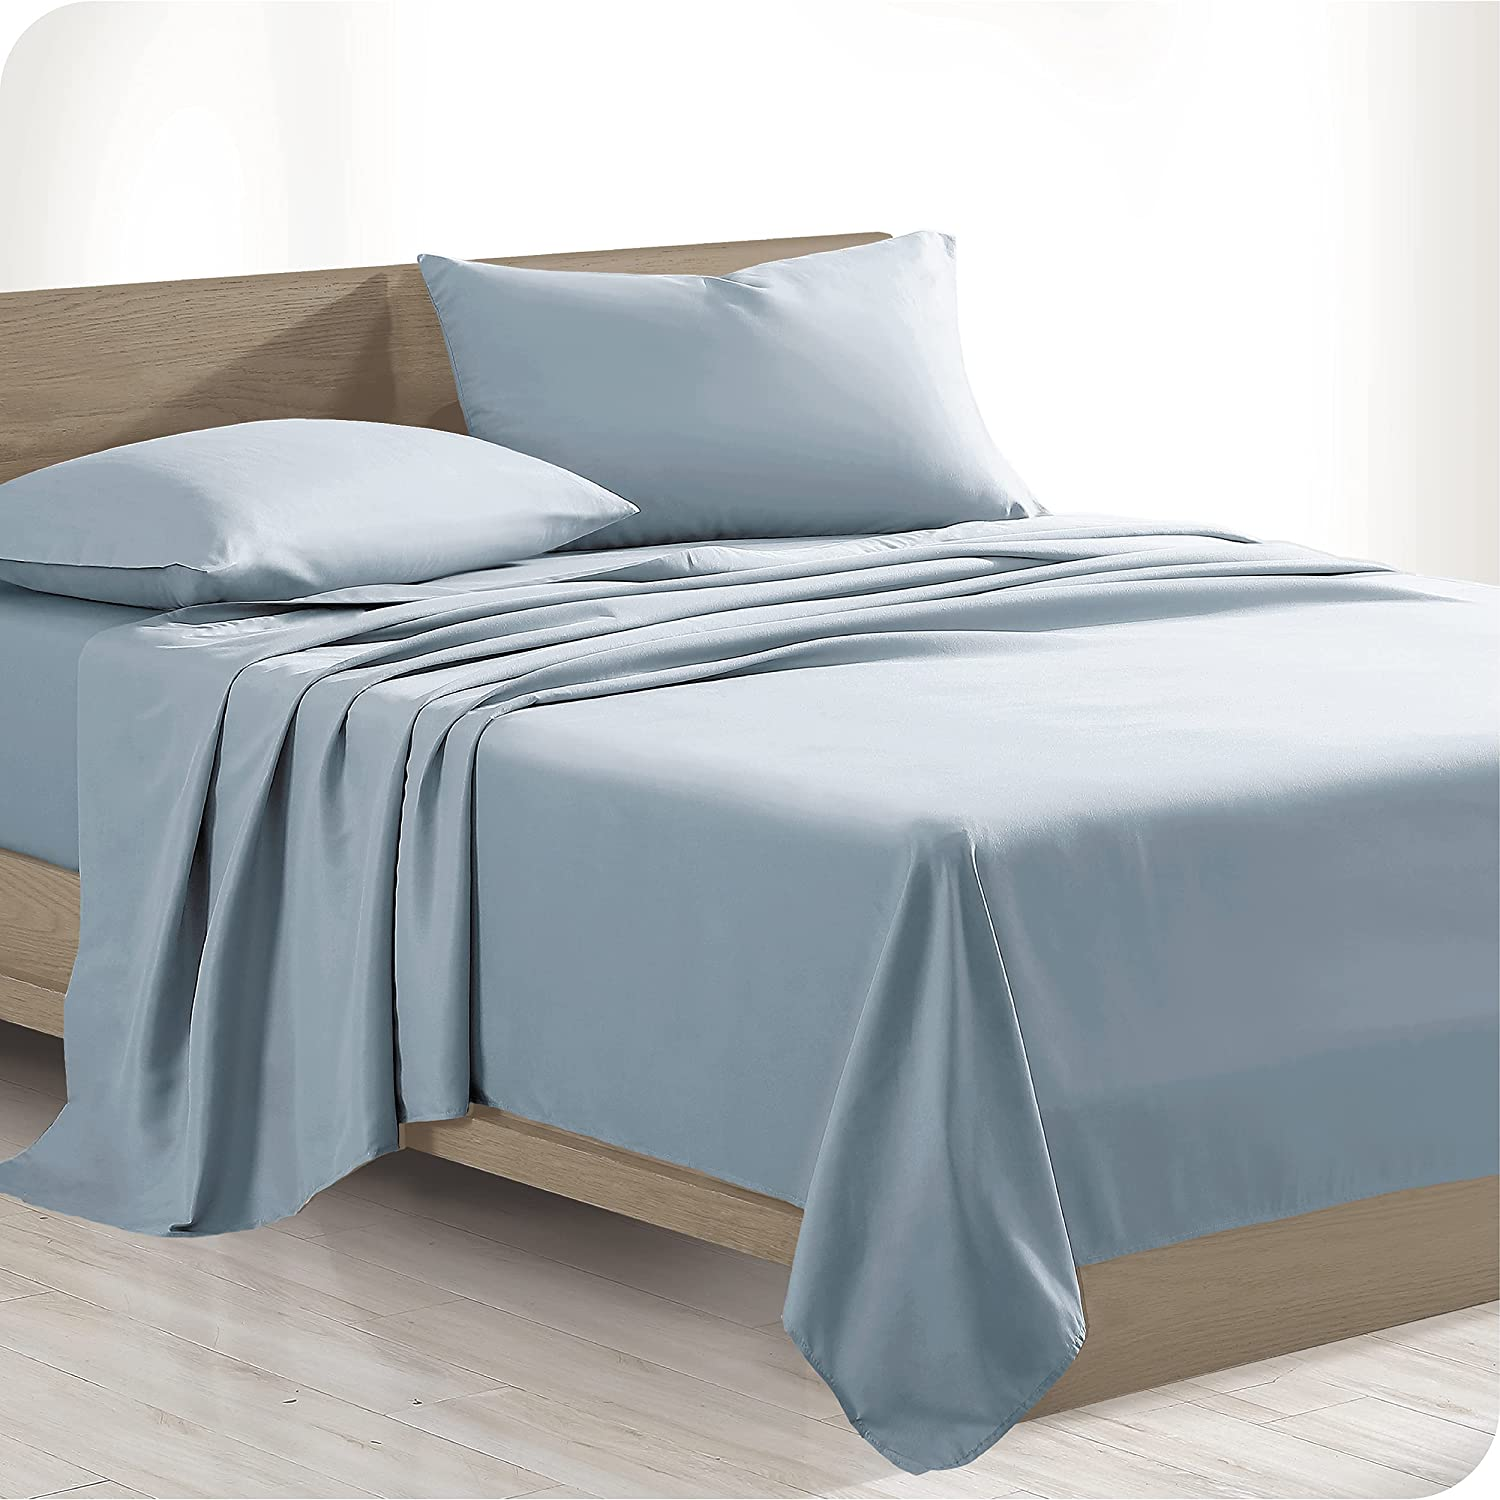 Bare Home 100% Organic Cotton Twin Sheet Set - Crisp Percale Weave - Lightweight & Breathable - Bedding Sheets & Pillowcases (Twin, Dusty Blue)